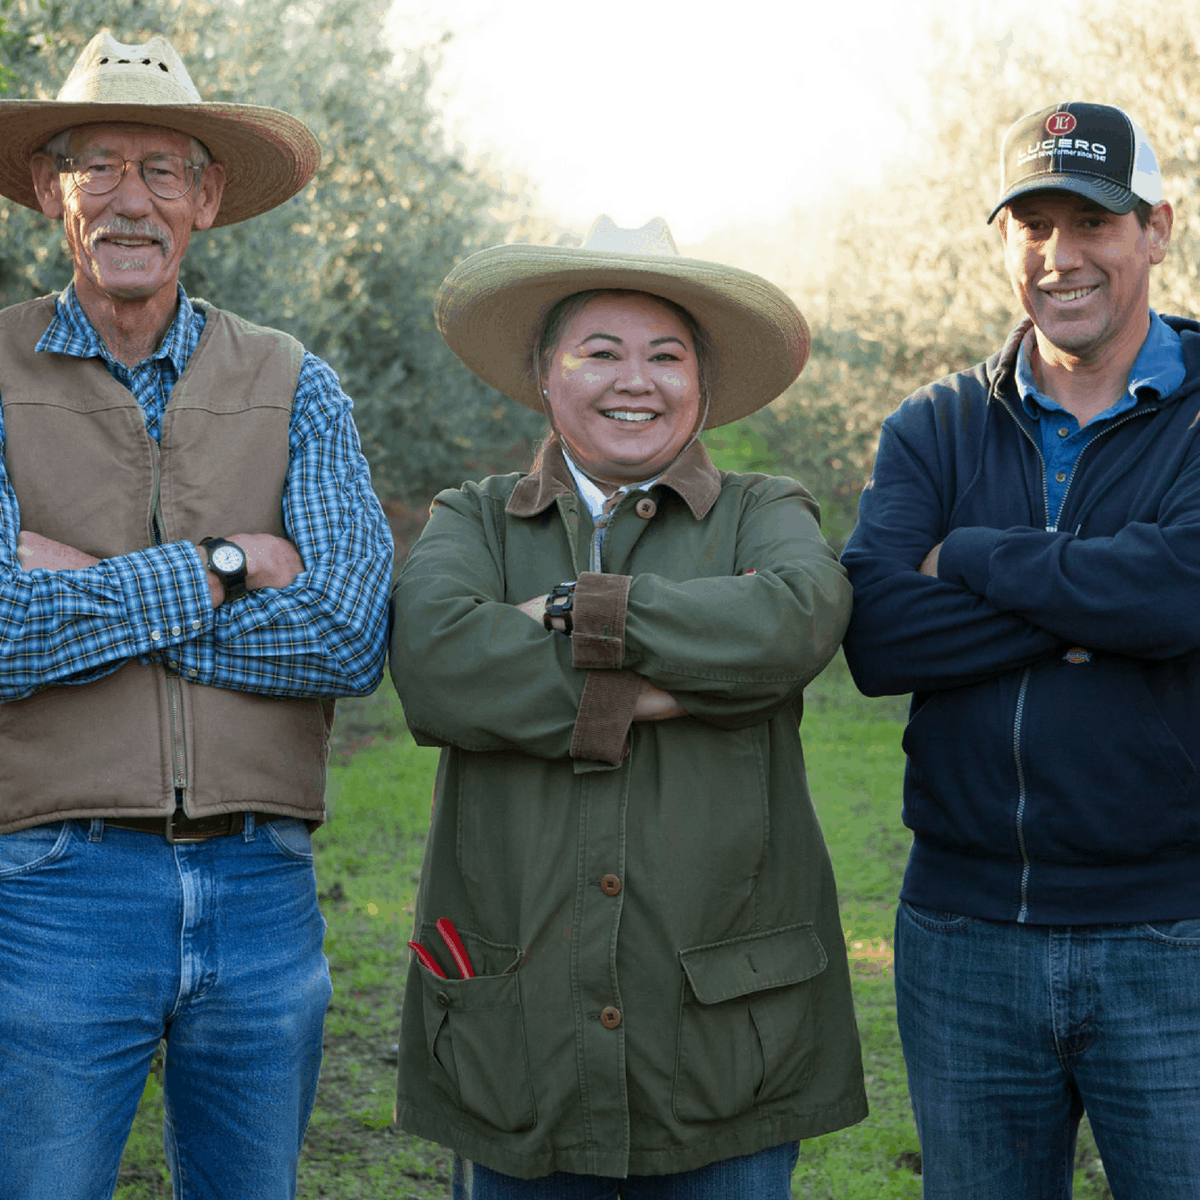 Meet a Farmer: Liz Tagami, General Manager for Lucero Olive Oil